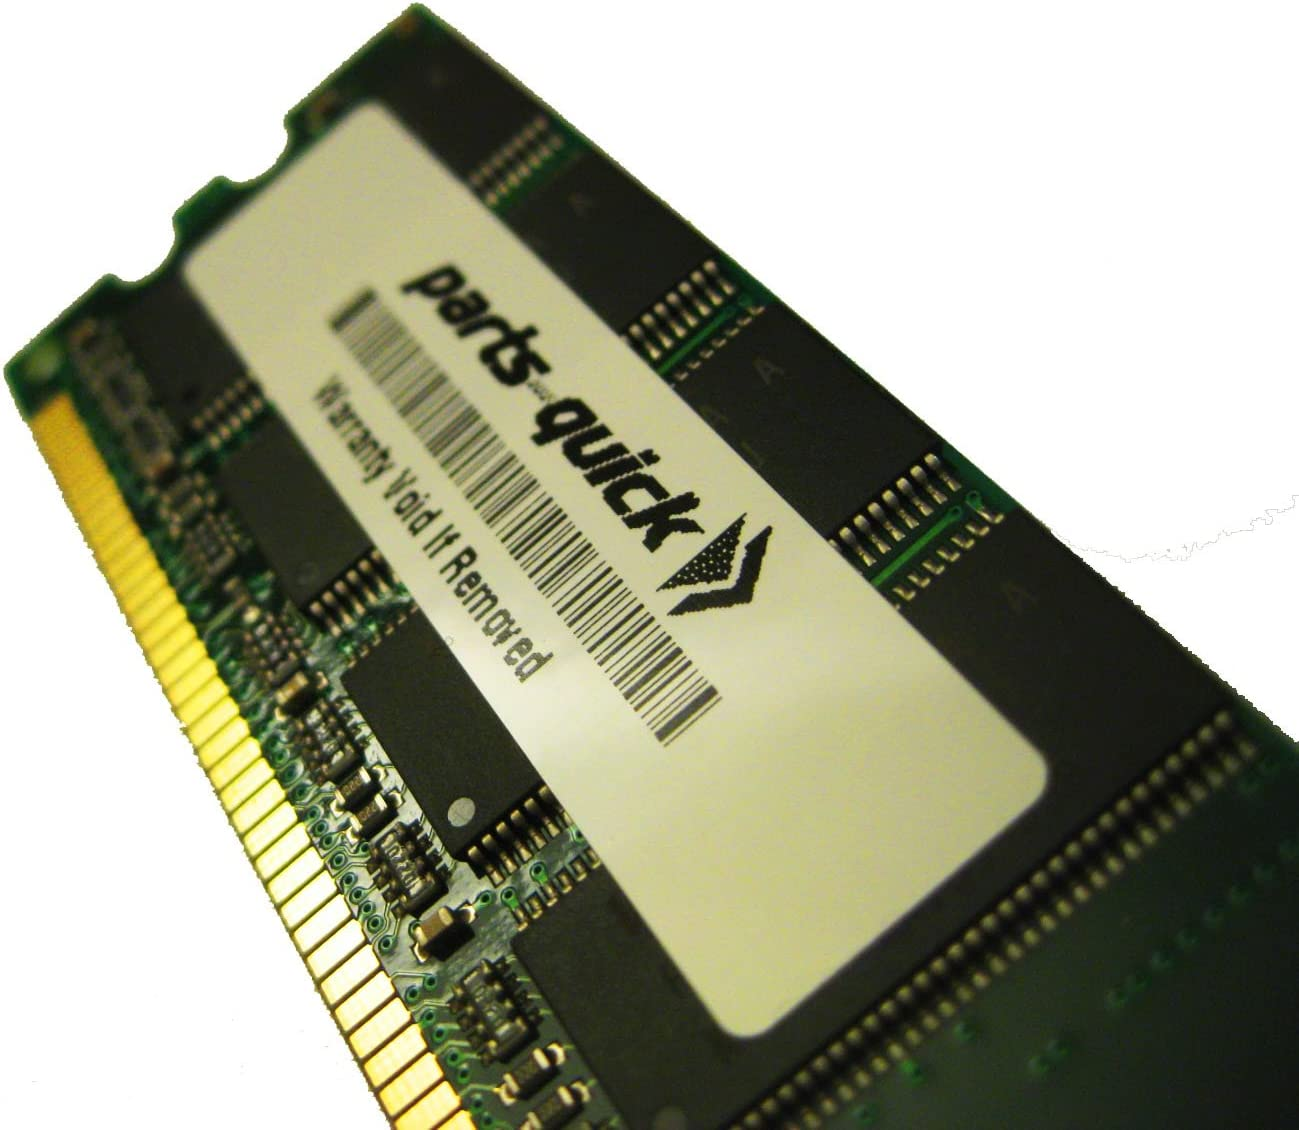 parts-quick 512MB 200 pin DDR SDRAM for Printer Over item handling ☆ famous Memory SODIMM HP